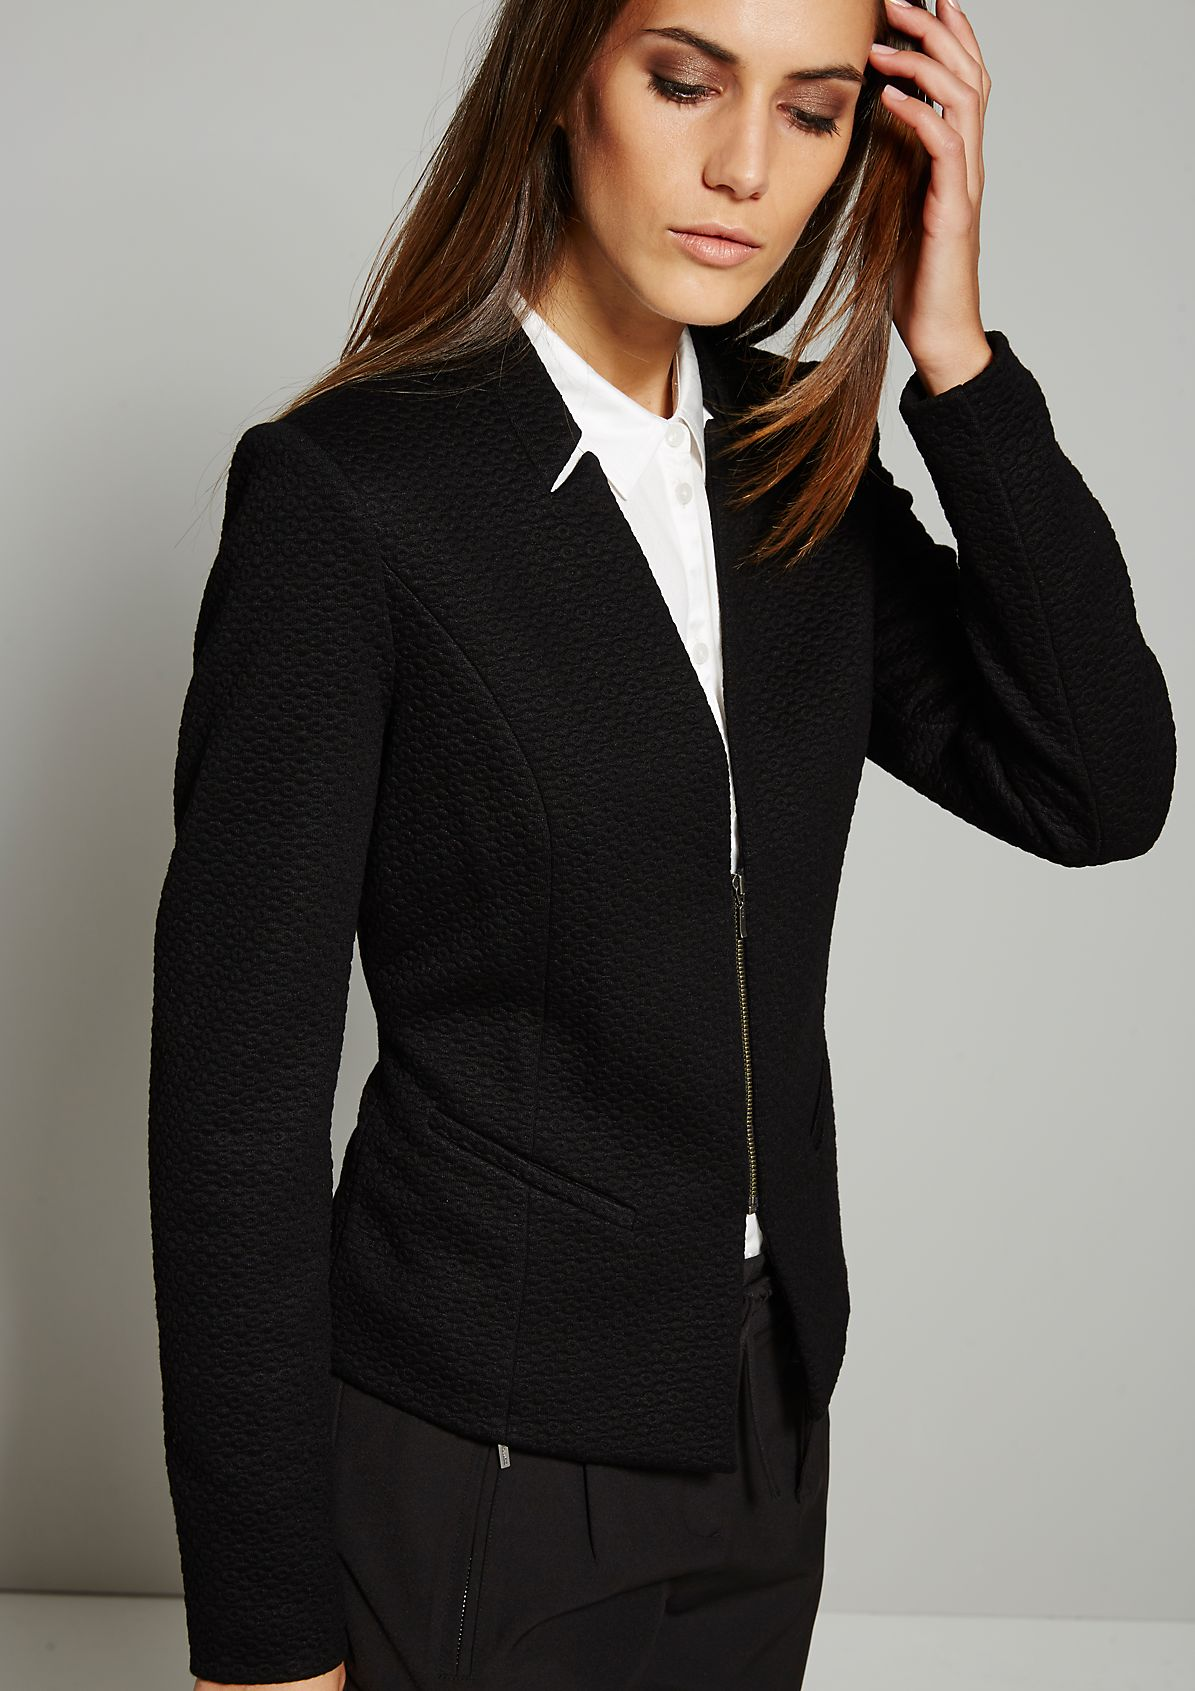 Elegant blazer with a stunning jacquard pattern from s.Oliver